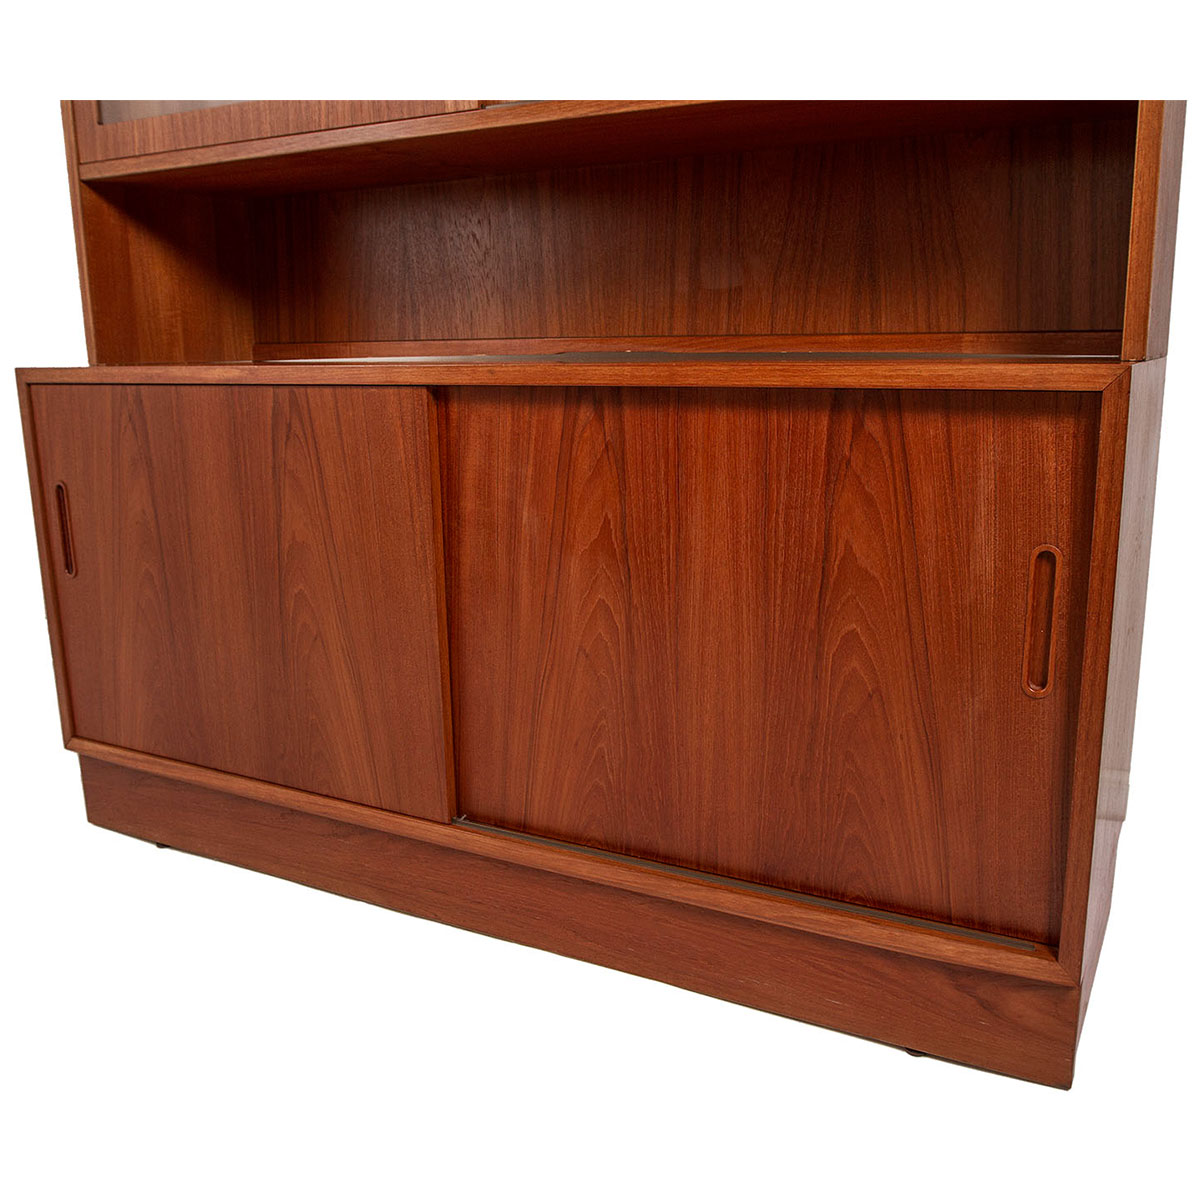 Danish Modern Teak Sideboard / Media Cabinet